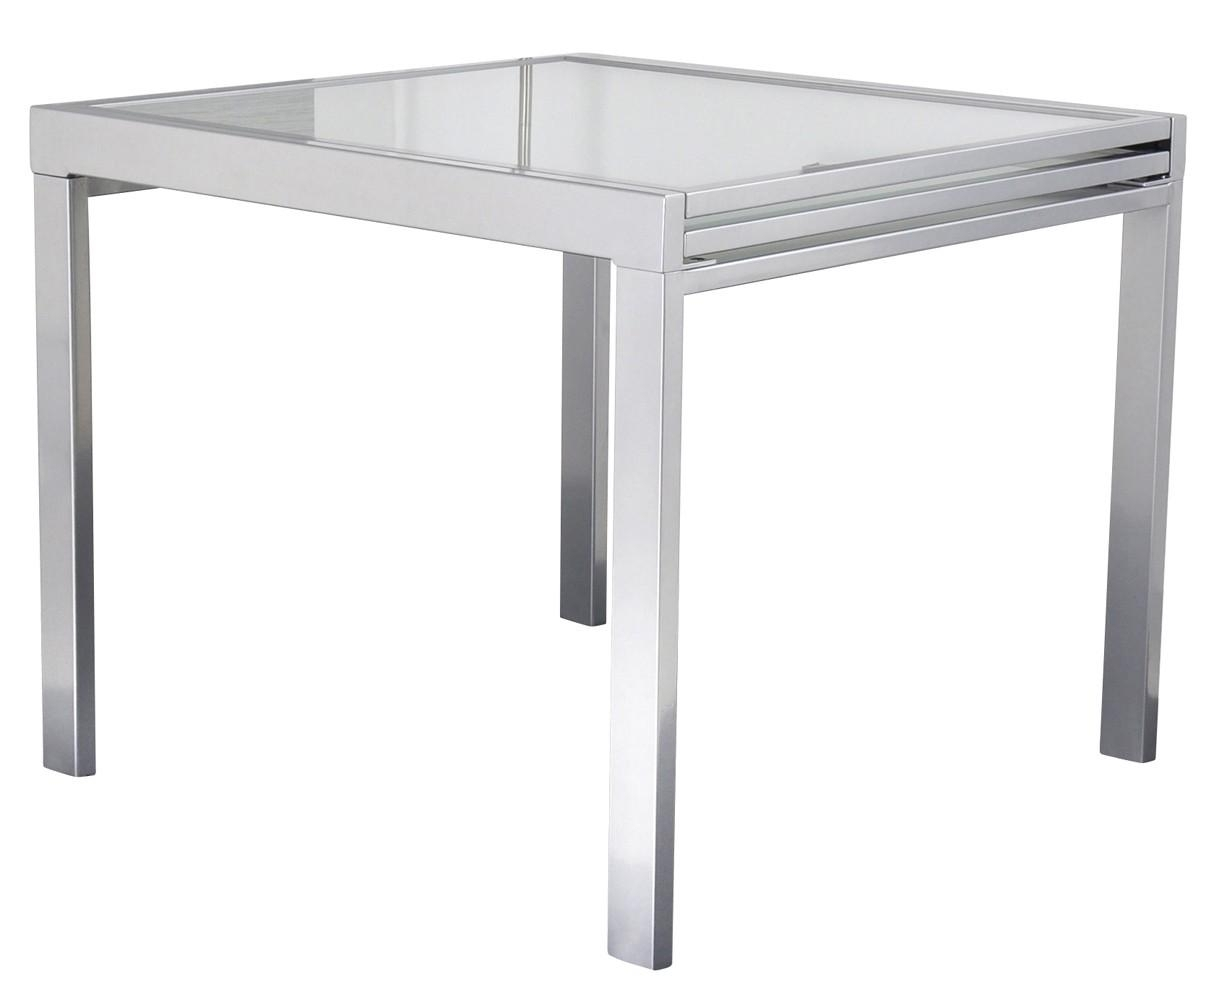 Les tendances table carr e extensible grise for Table en verre a rallonge